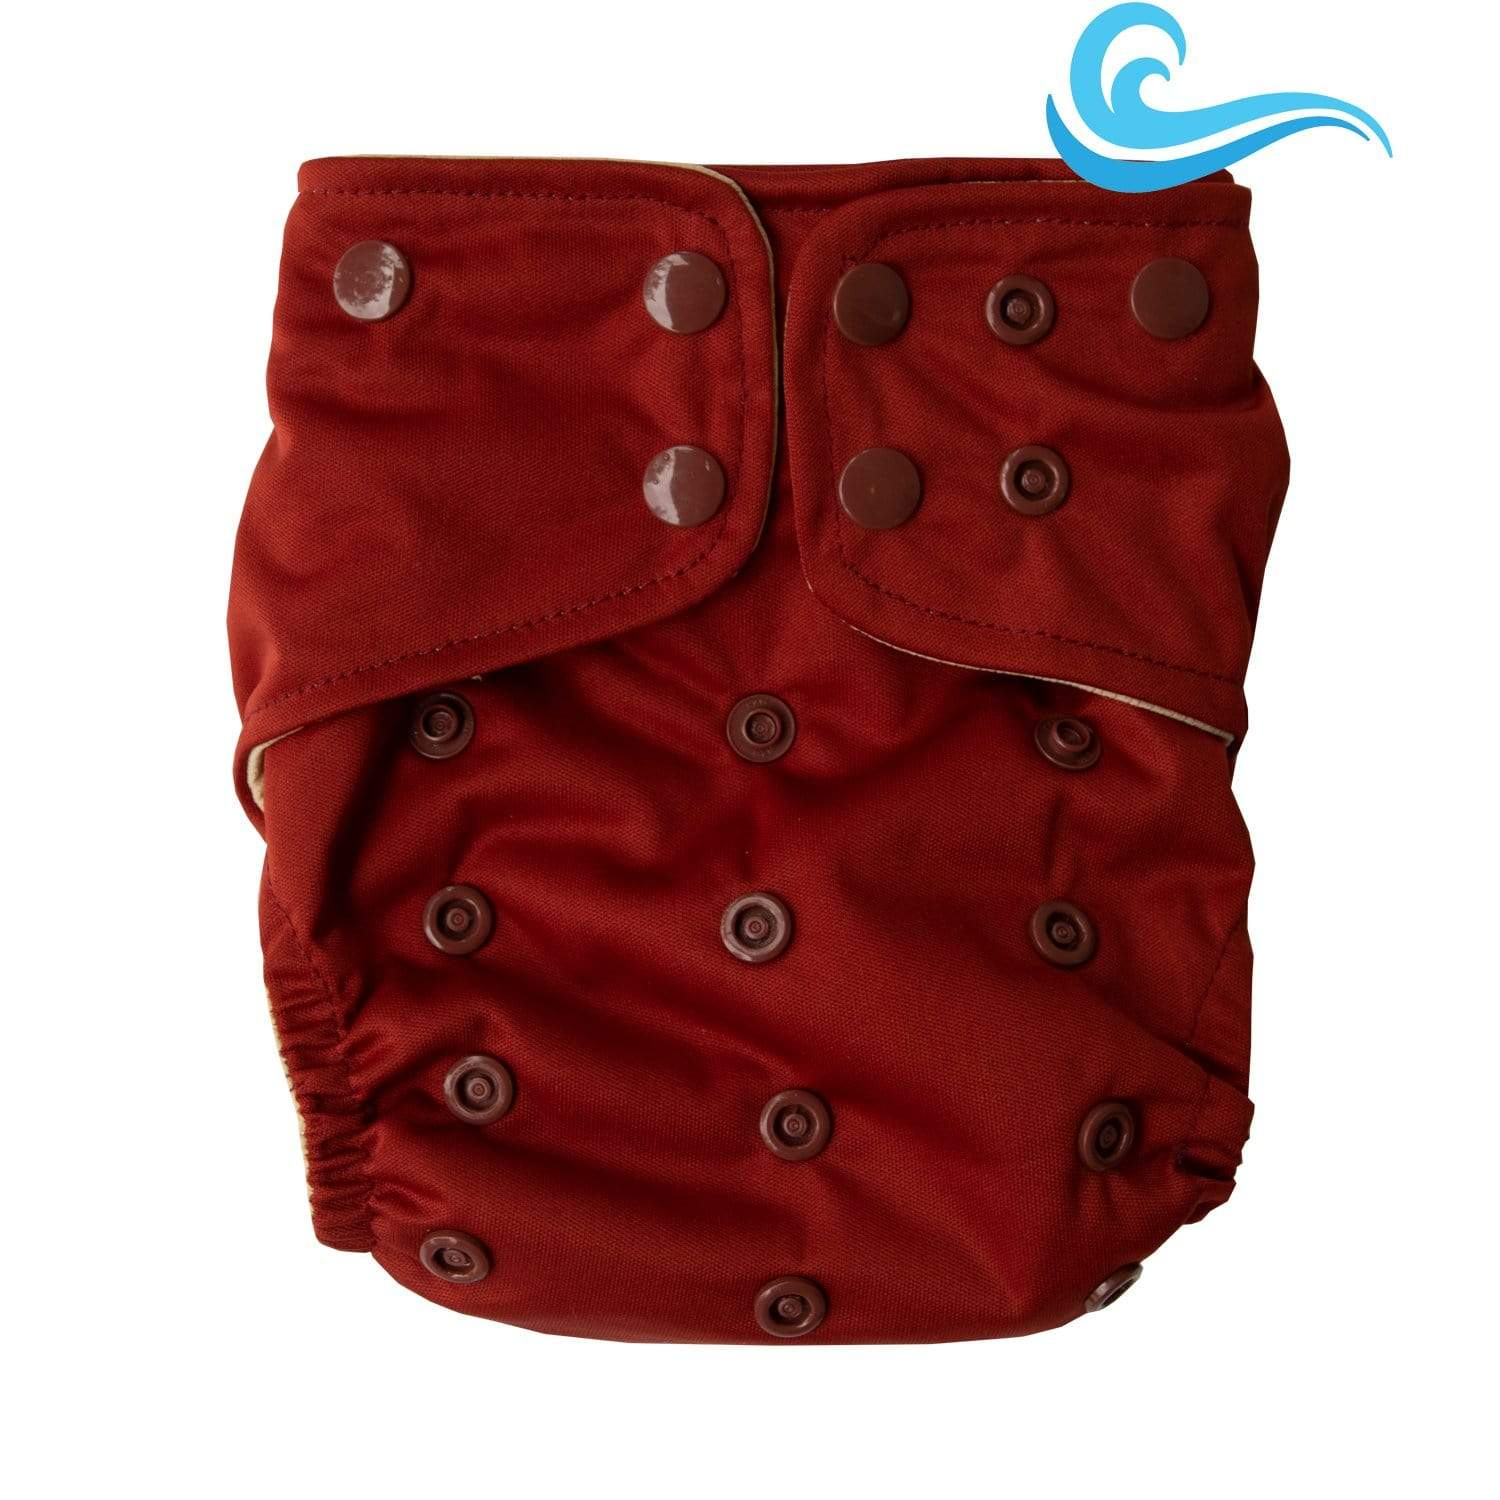 Lighthouse Kid's Company Snap Supreme Swim Diaper - Cranberry